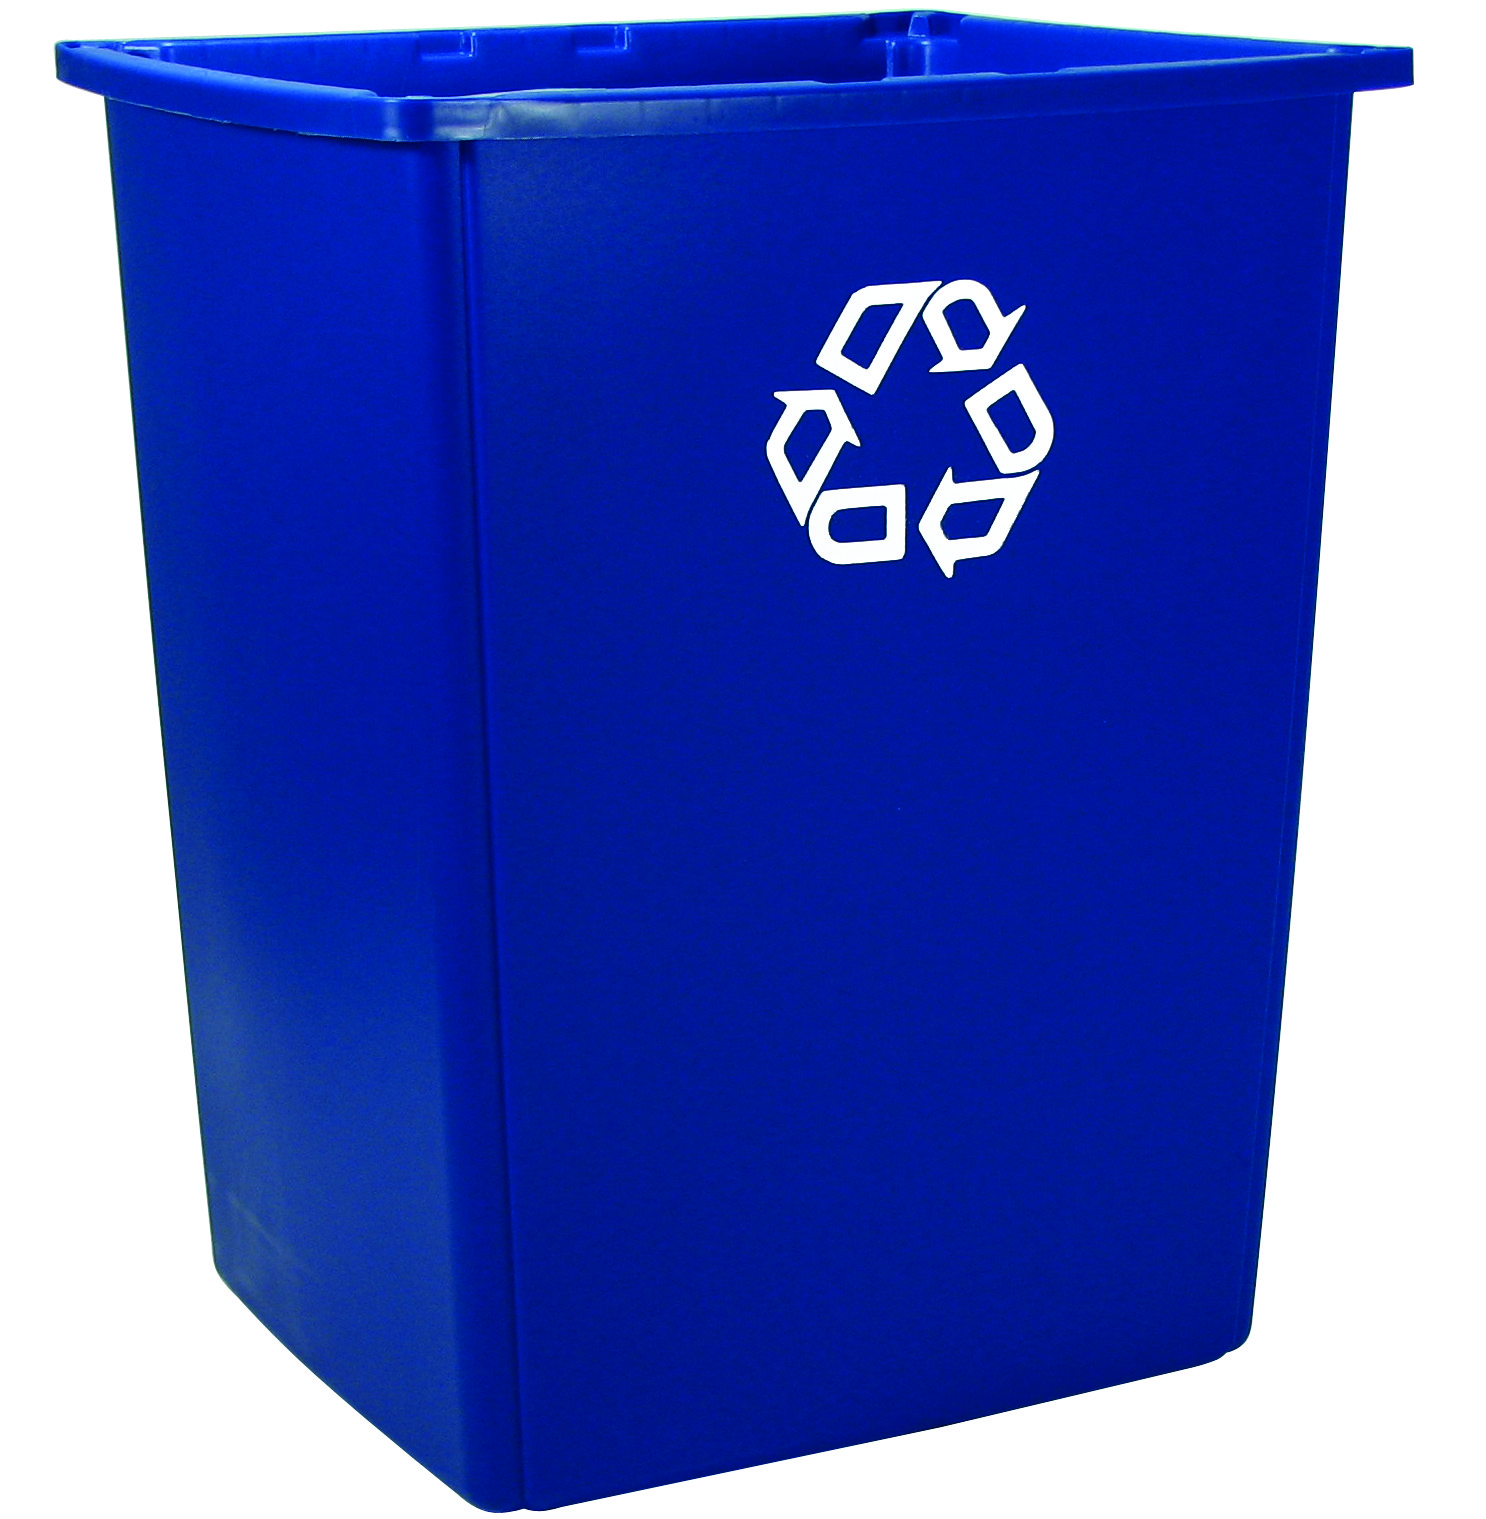 Blue rubbermaid glutton recycling container 56 gallons recycle away - Recycle containers for home use ...